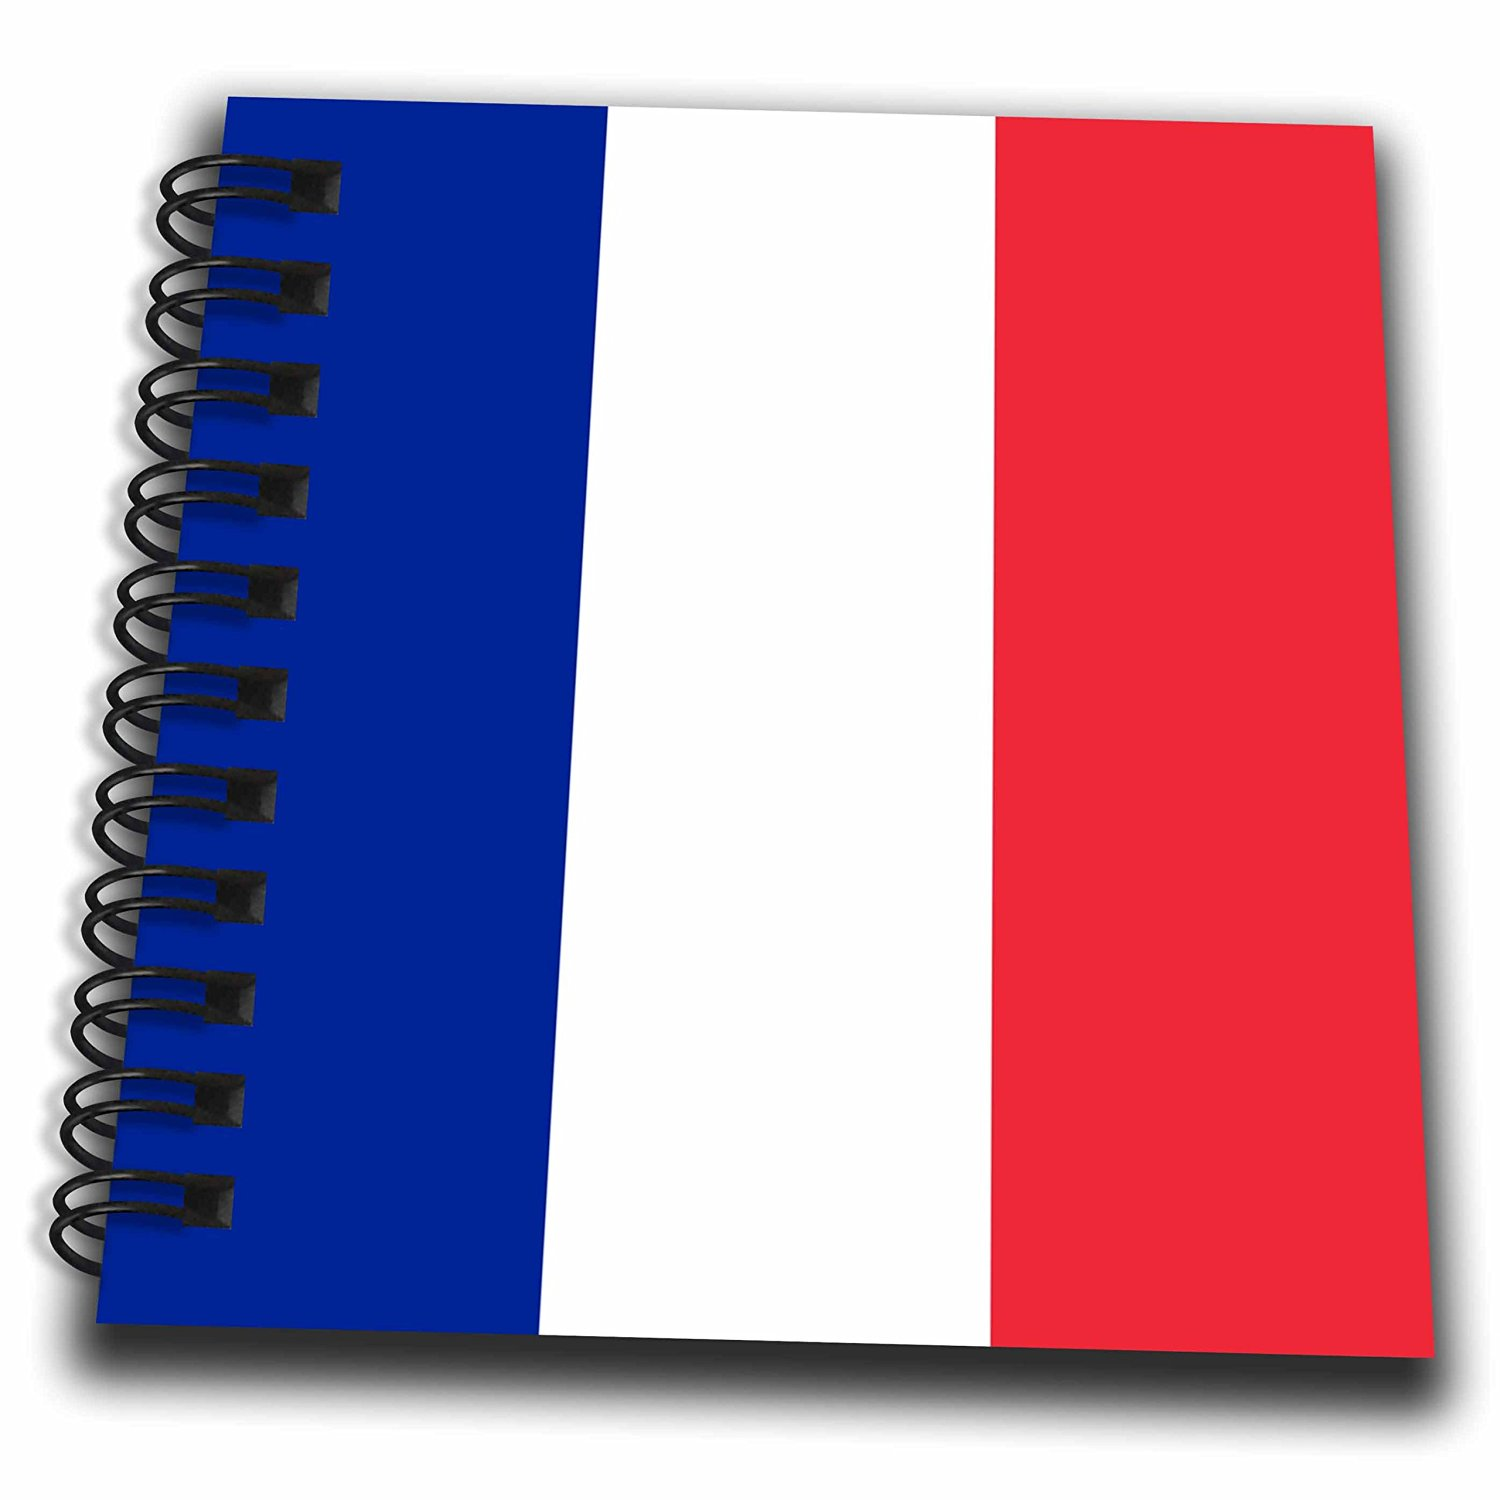 Buy Inspirationzstore Flags Flag Of French Guinea Red Yellow